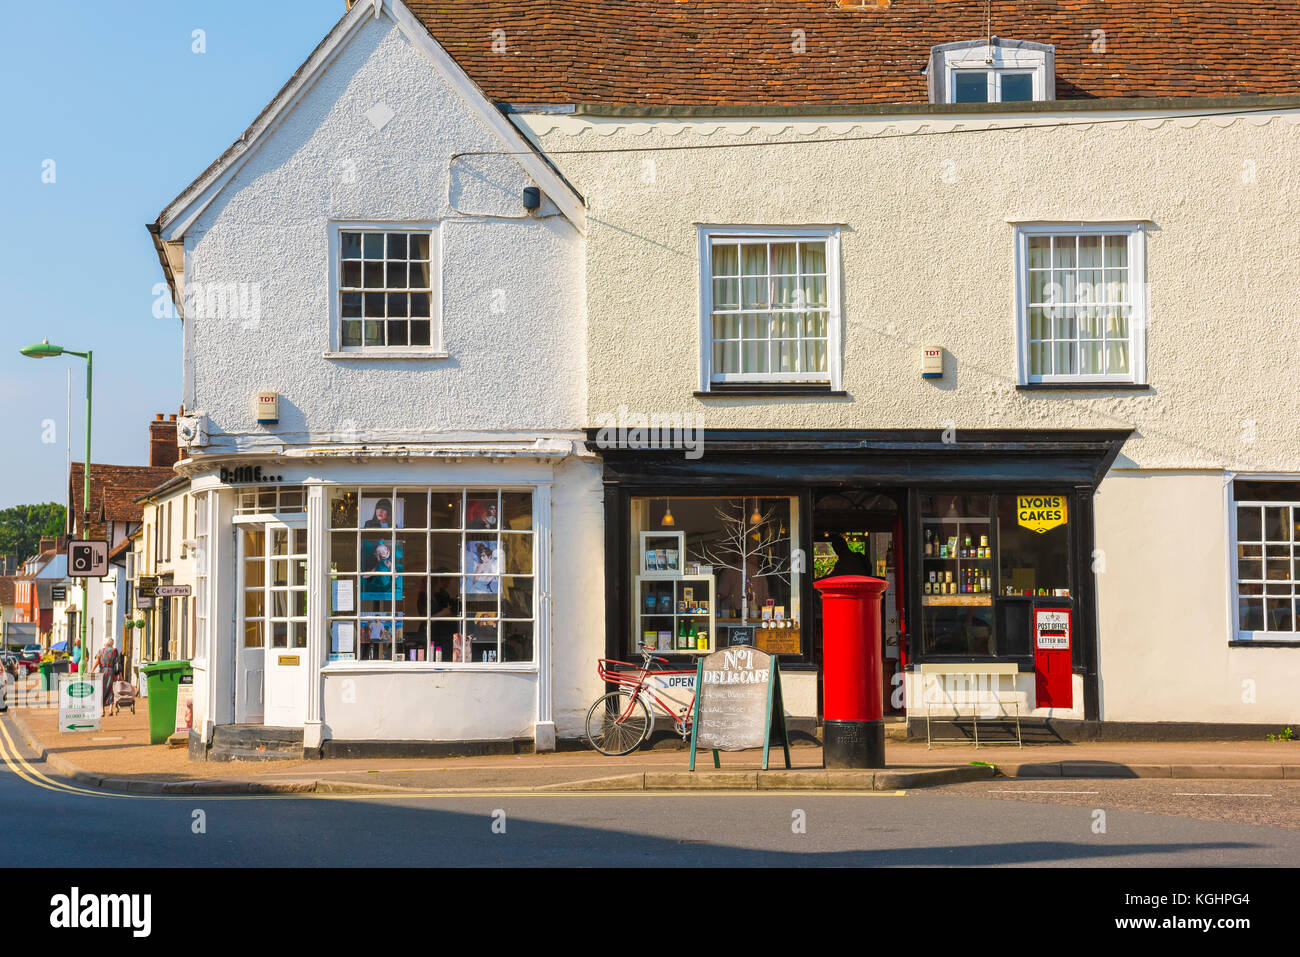 Clare Suffolk UK, traditional village shops along the High Street in Clare, Suffolk, England, Babergh district, - Stock Image